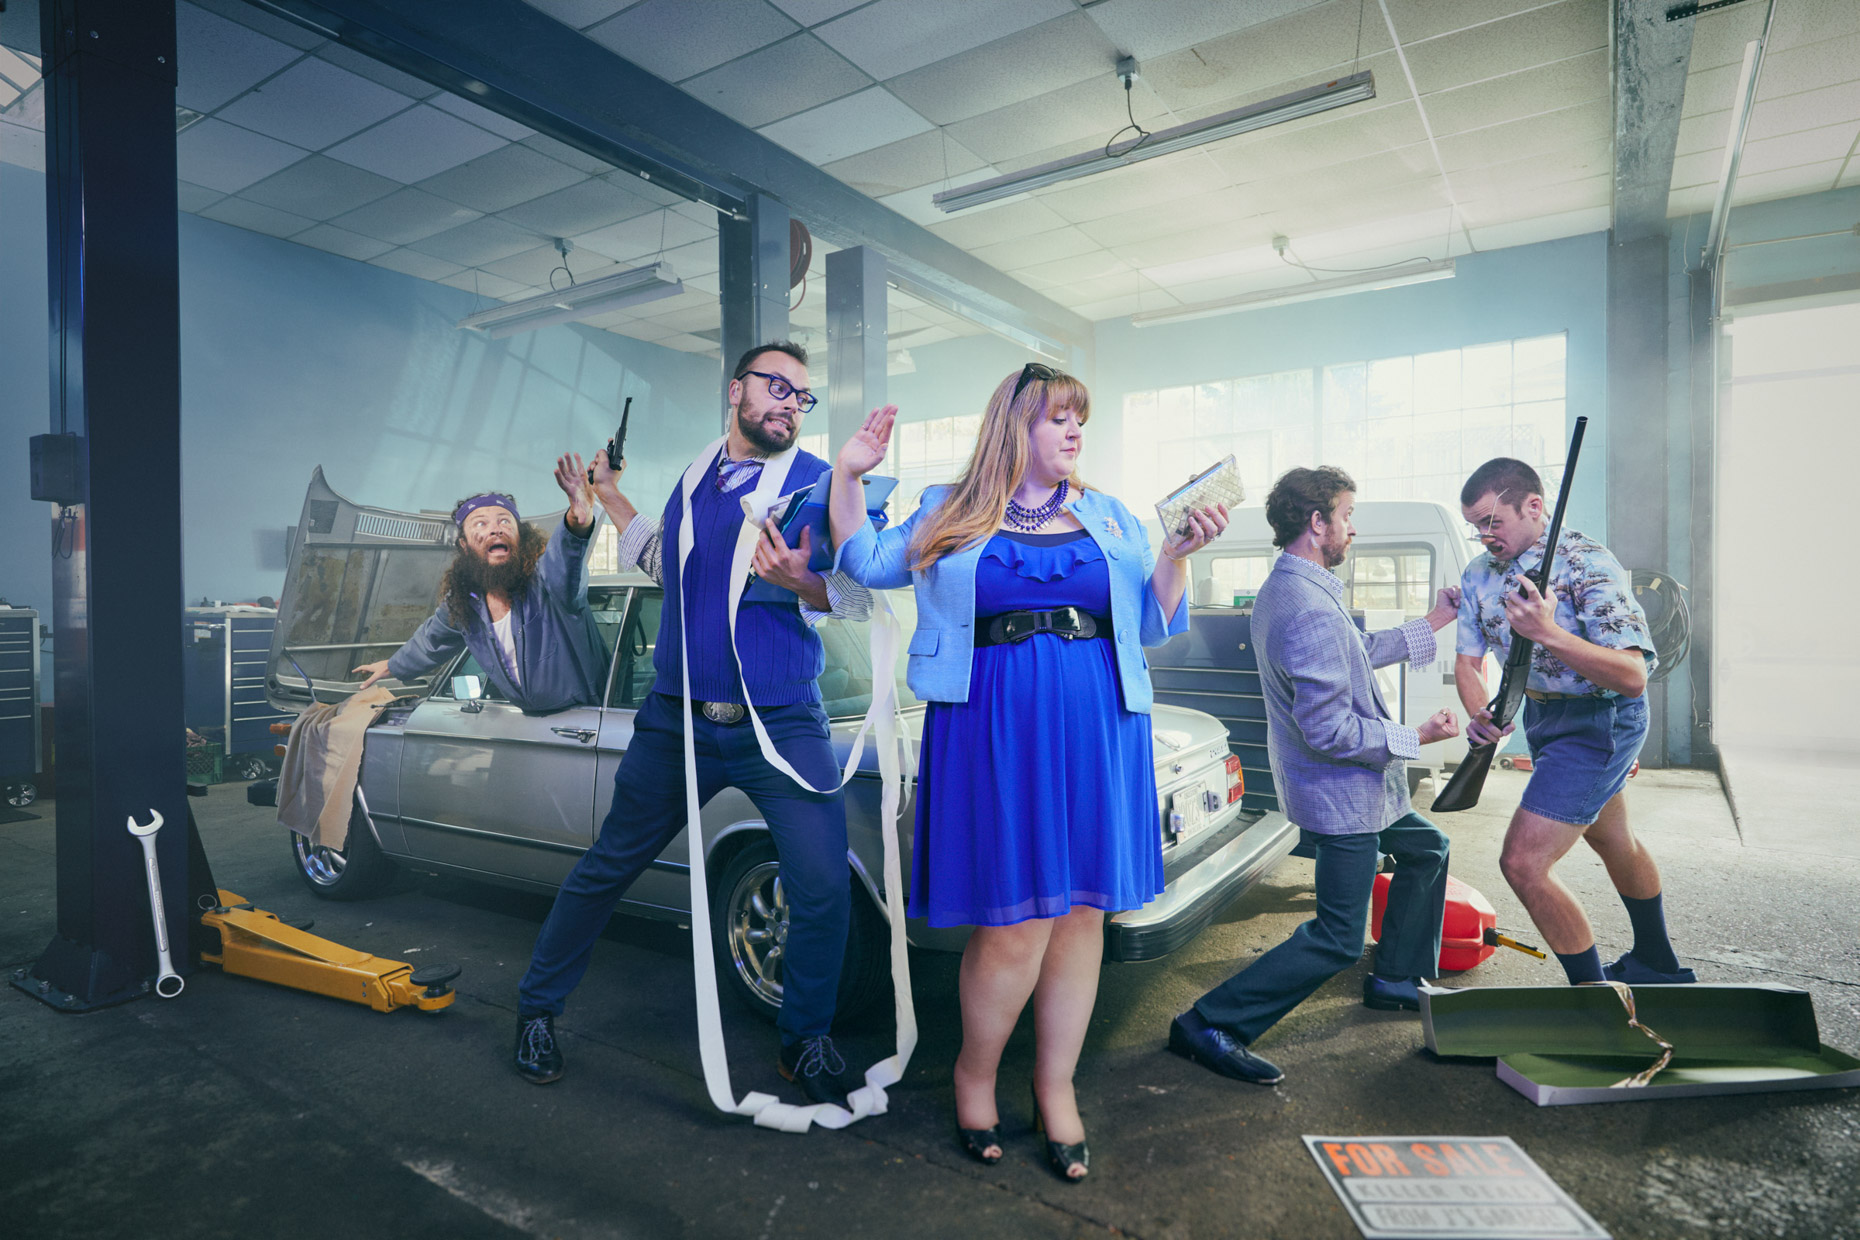 Improv comedy team J Names struggle at an auto-body shop